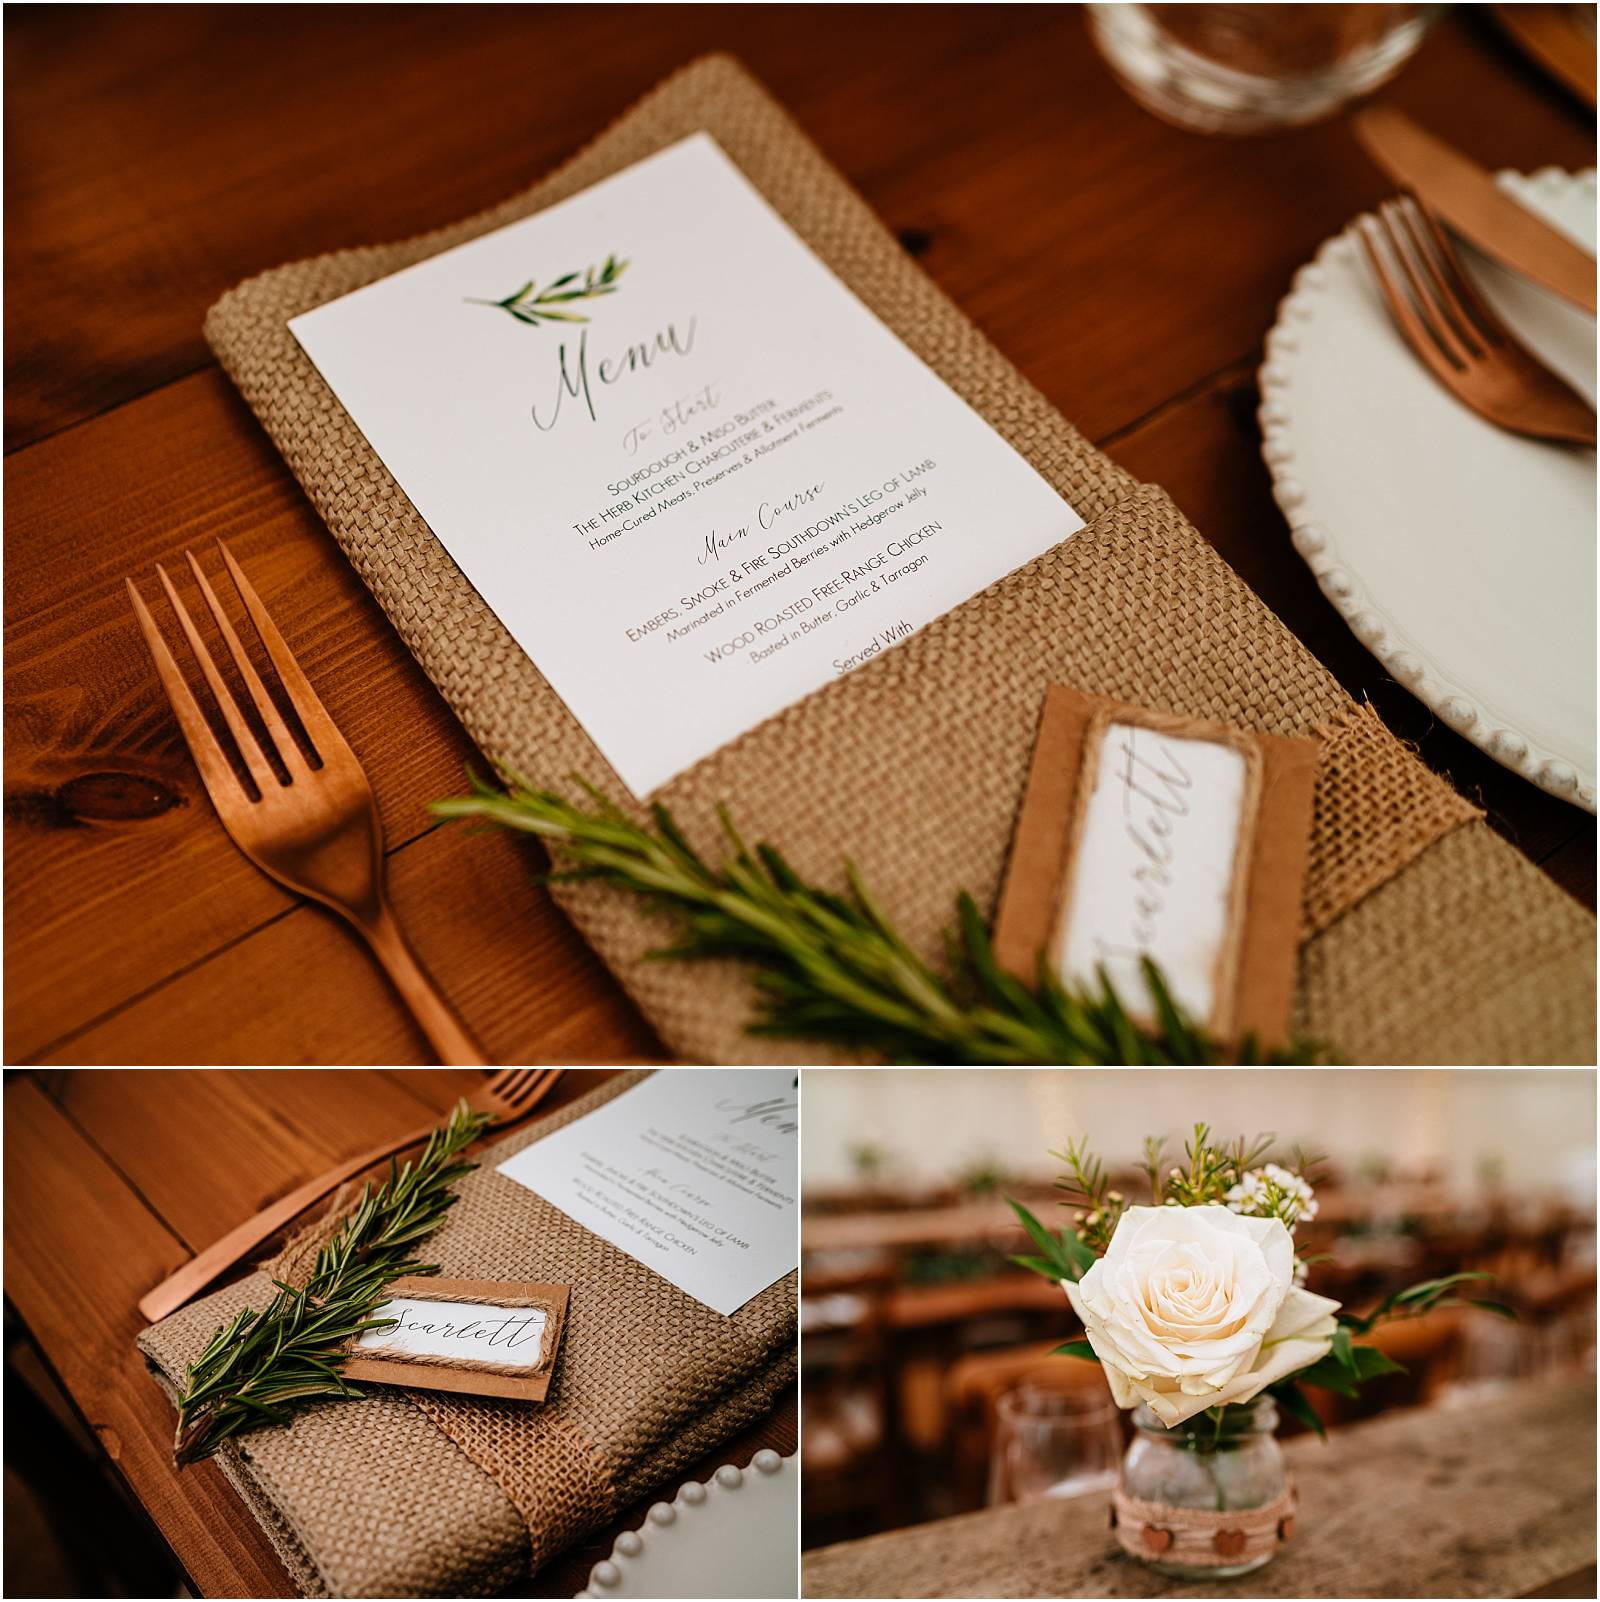 annie fern wedding styling with gold cutlery